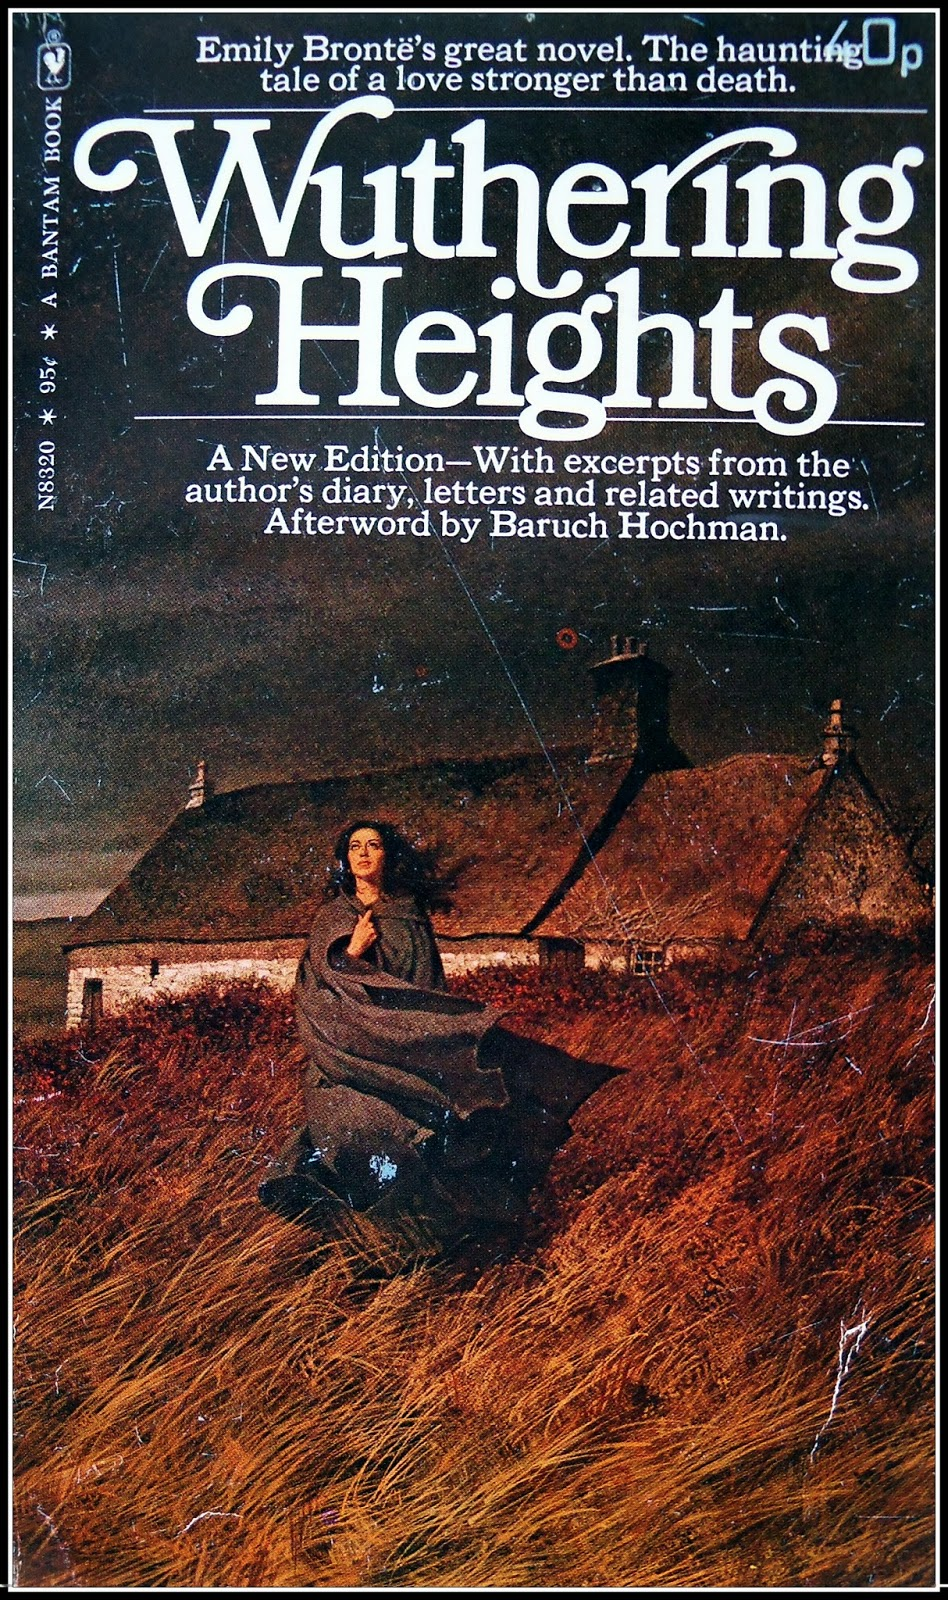 [PDF] Wuthering Heights Book by Emily Bronta Free Download (464 pages)